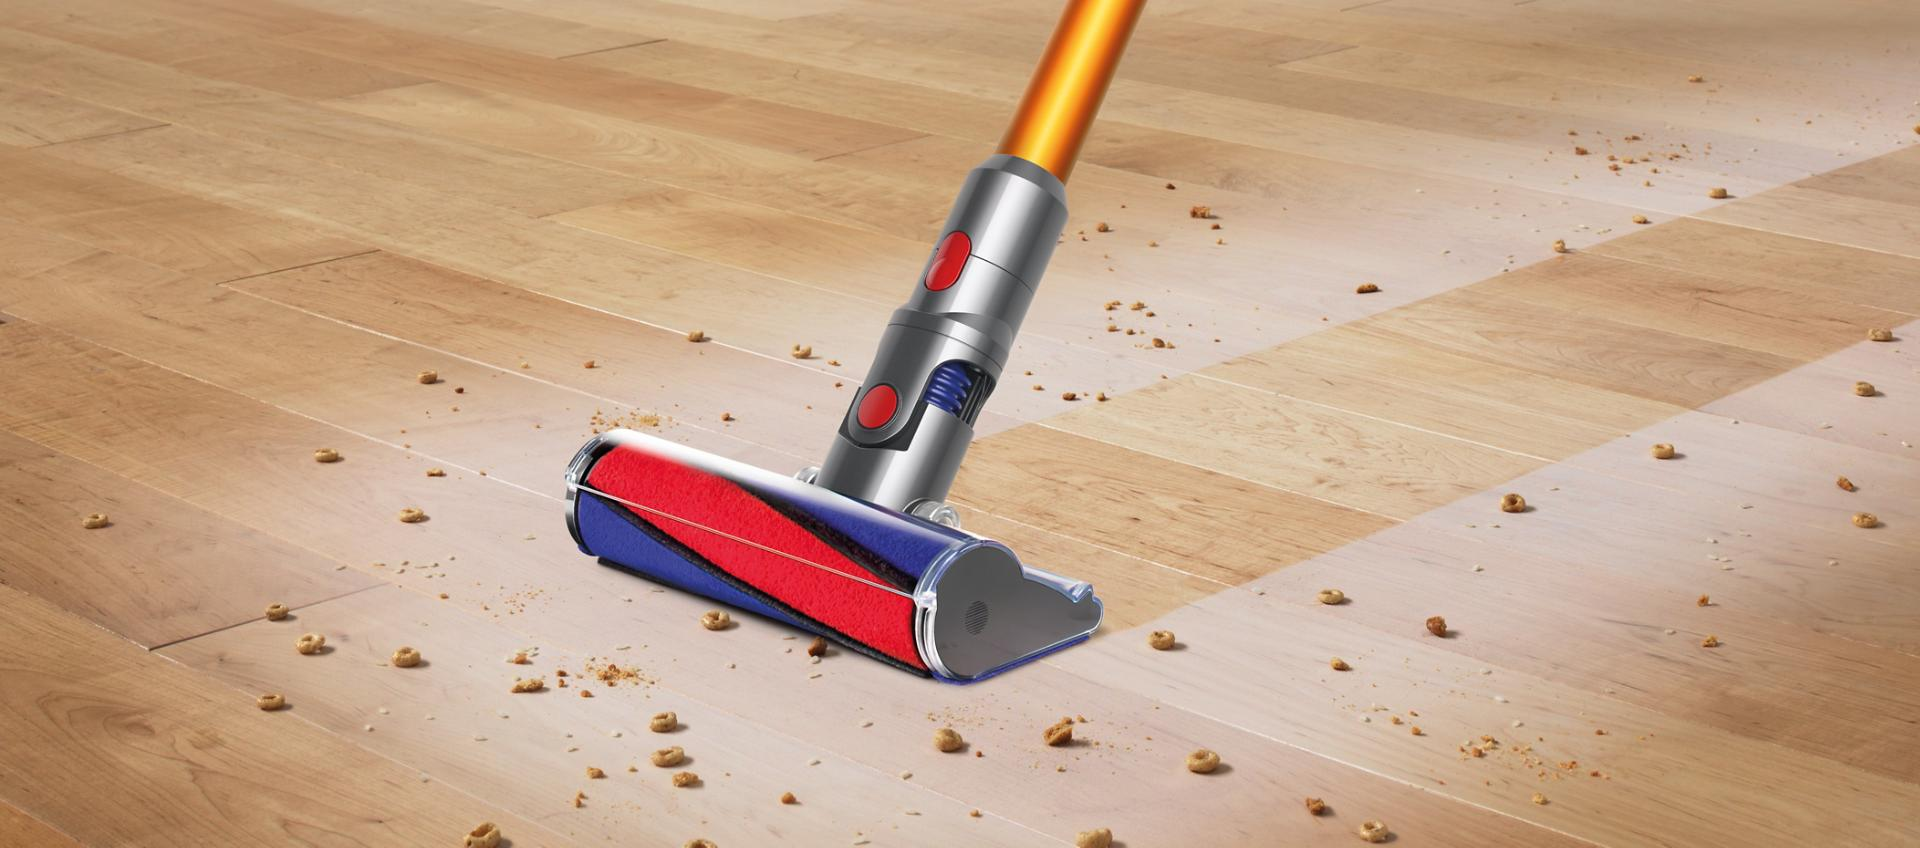 Two Dyson V8 vacuum cleaners cleaning side by side on carpet and hard floor